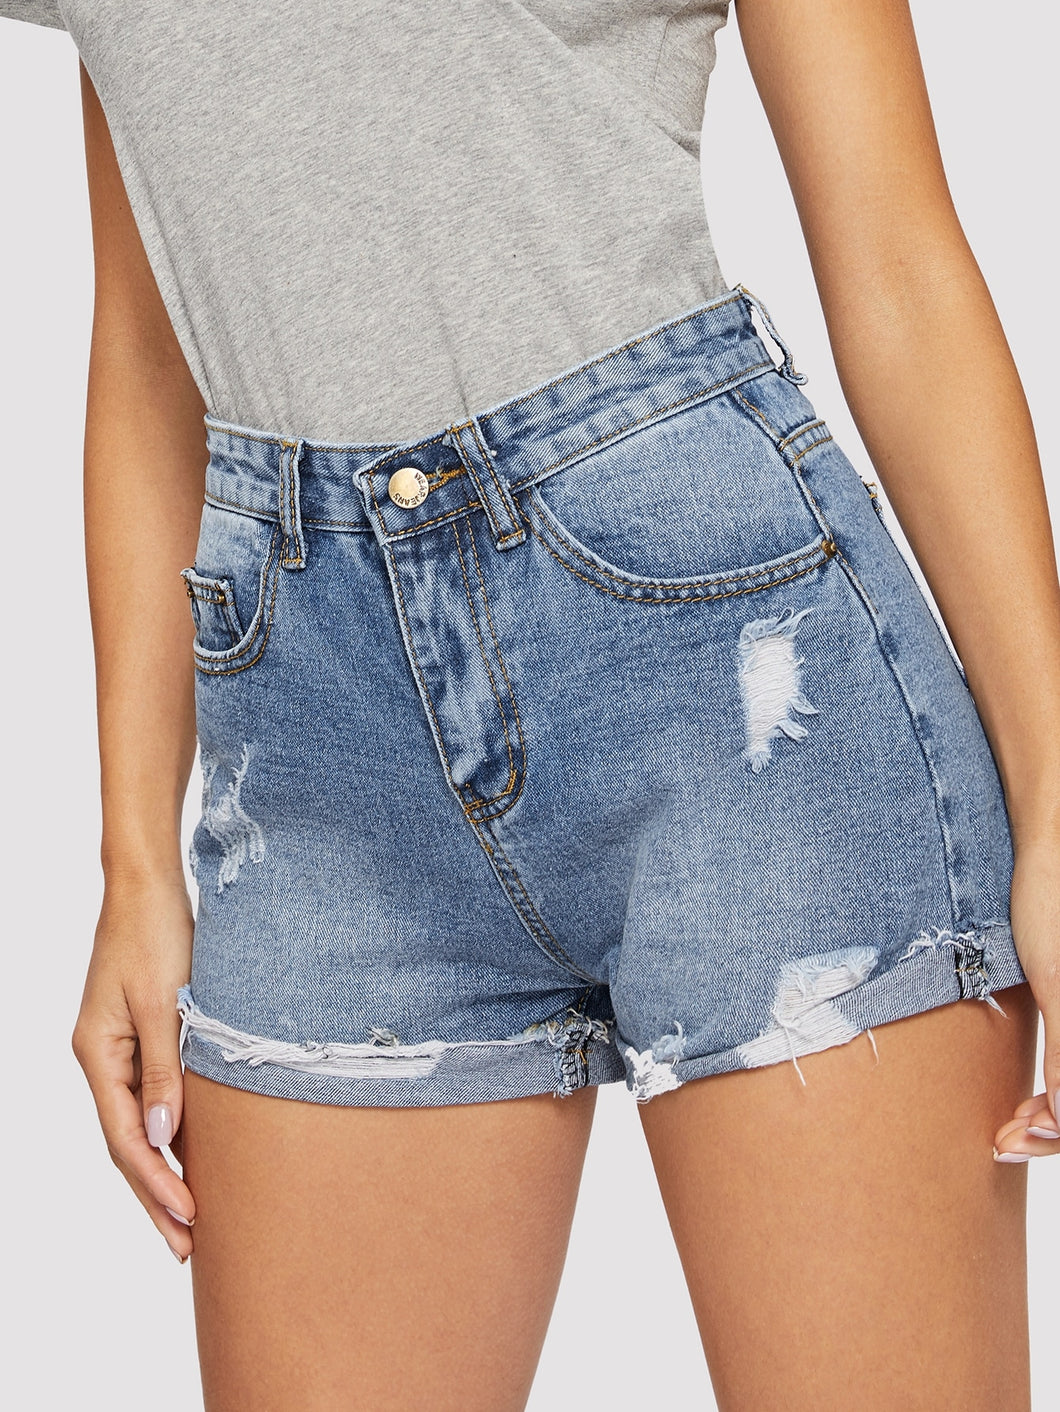 SHORTS Ripped Cuffed Hem Denim Shorts - EK CHIC